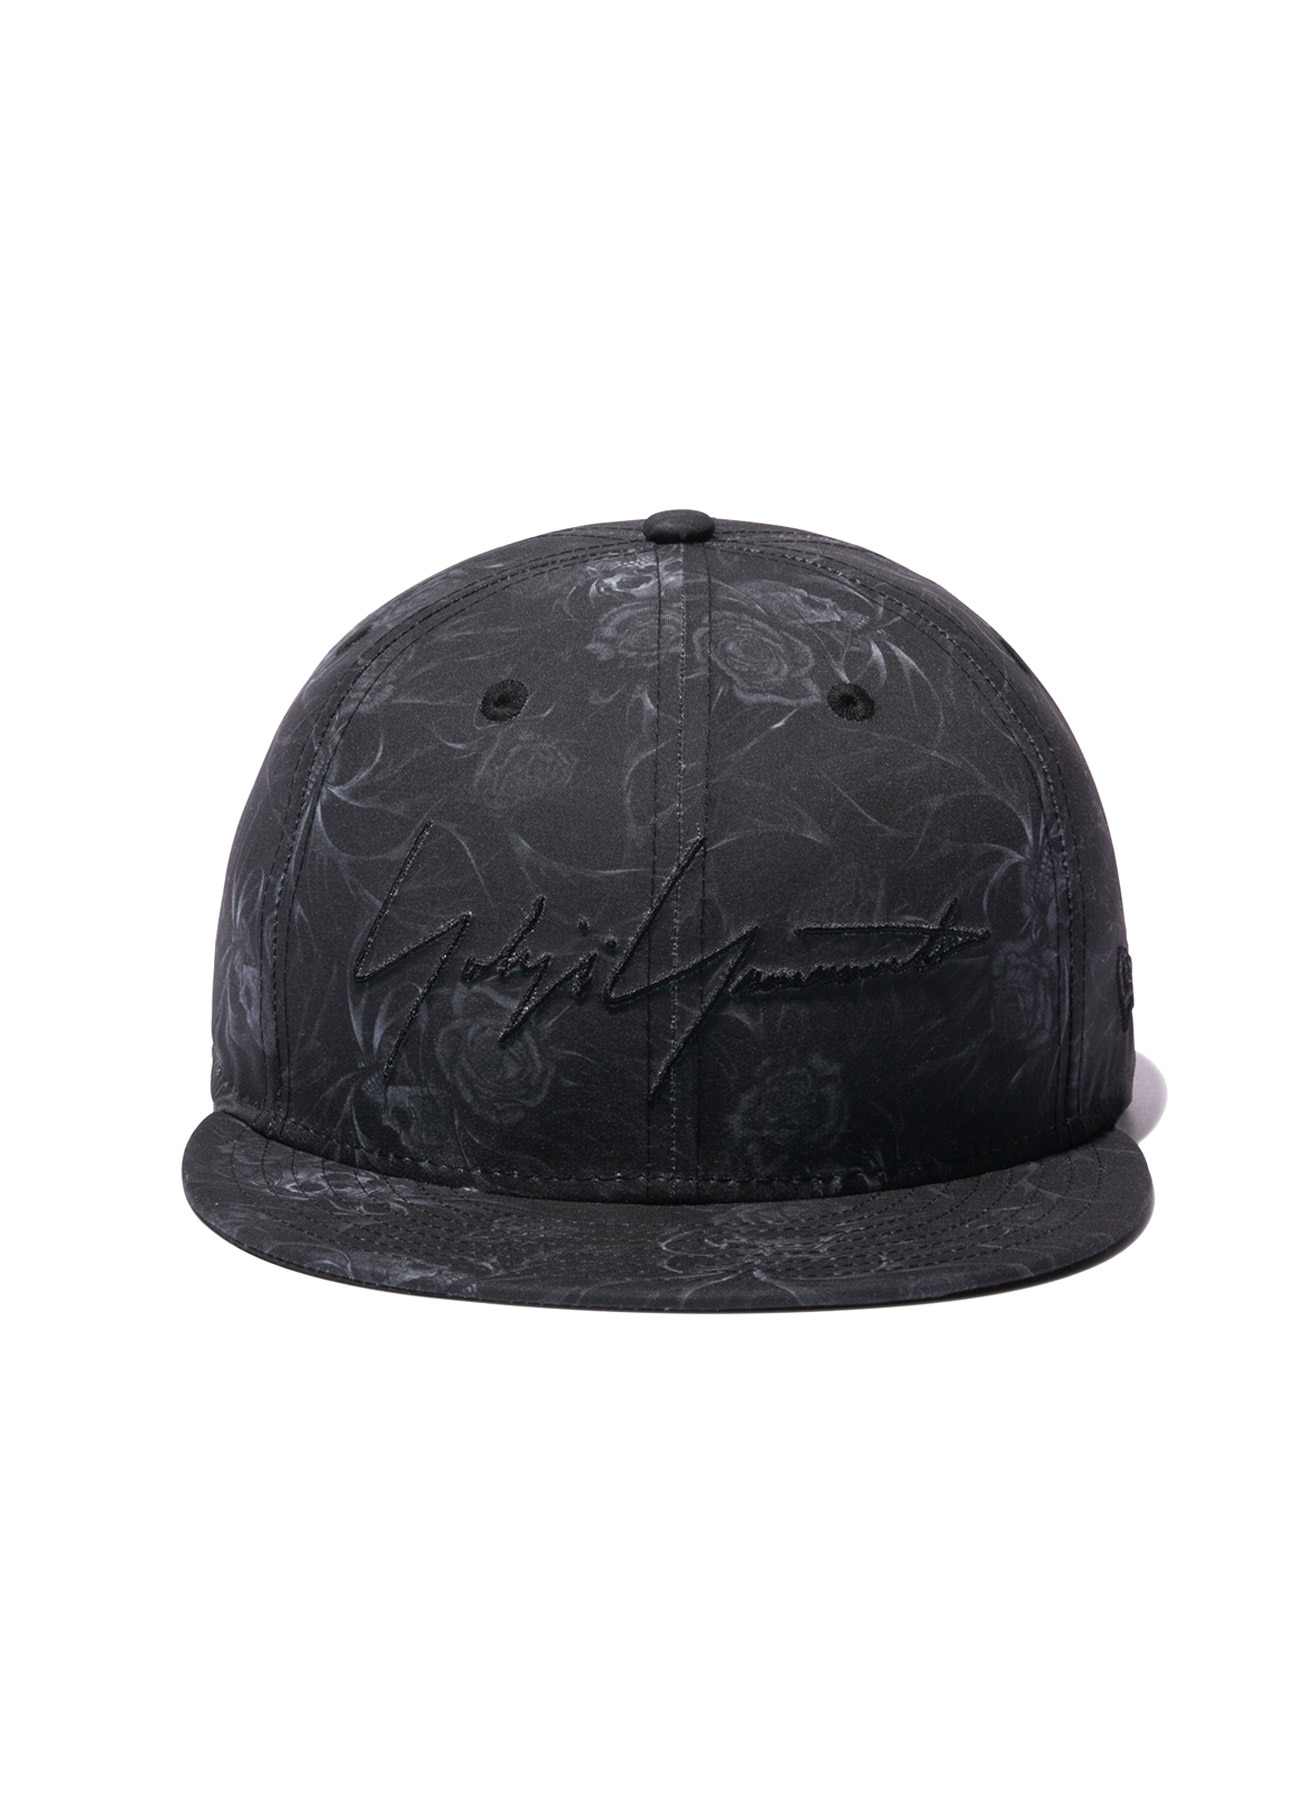 Yohji Yamamoto × New Era POLYESTER TRANSCRIPTION PRINT SKULL ROSE 59FIFTY BLACK